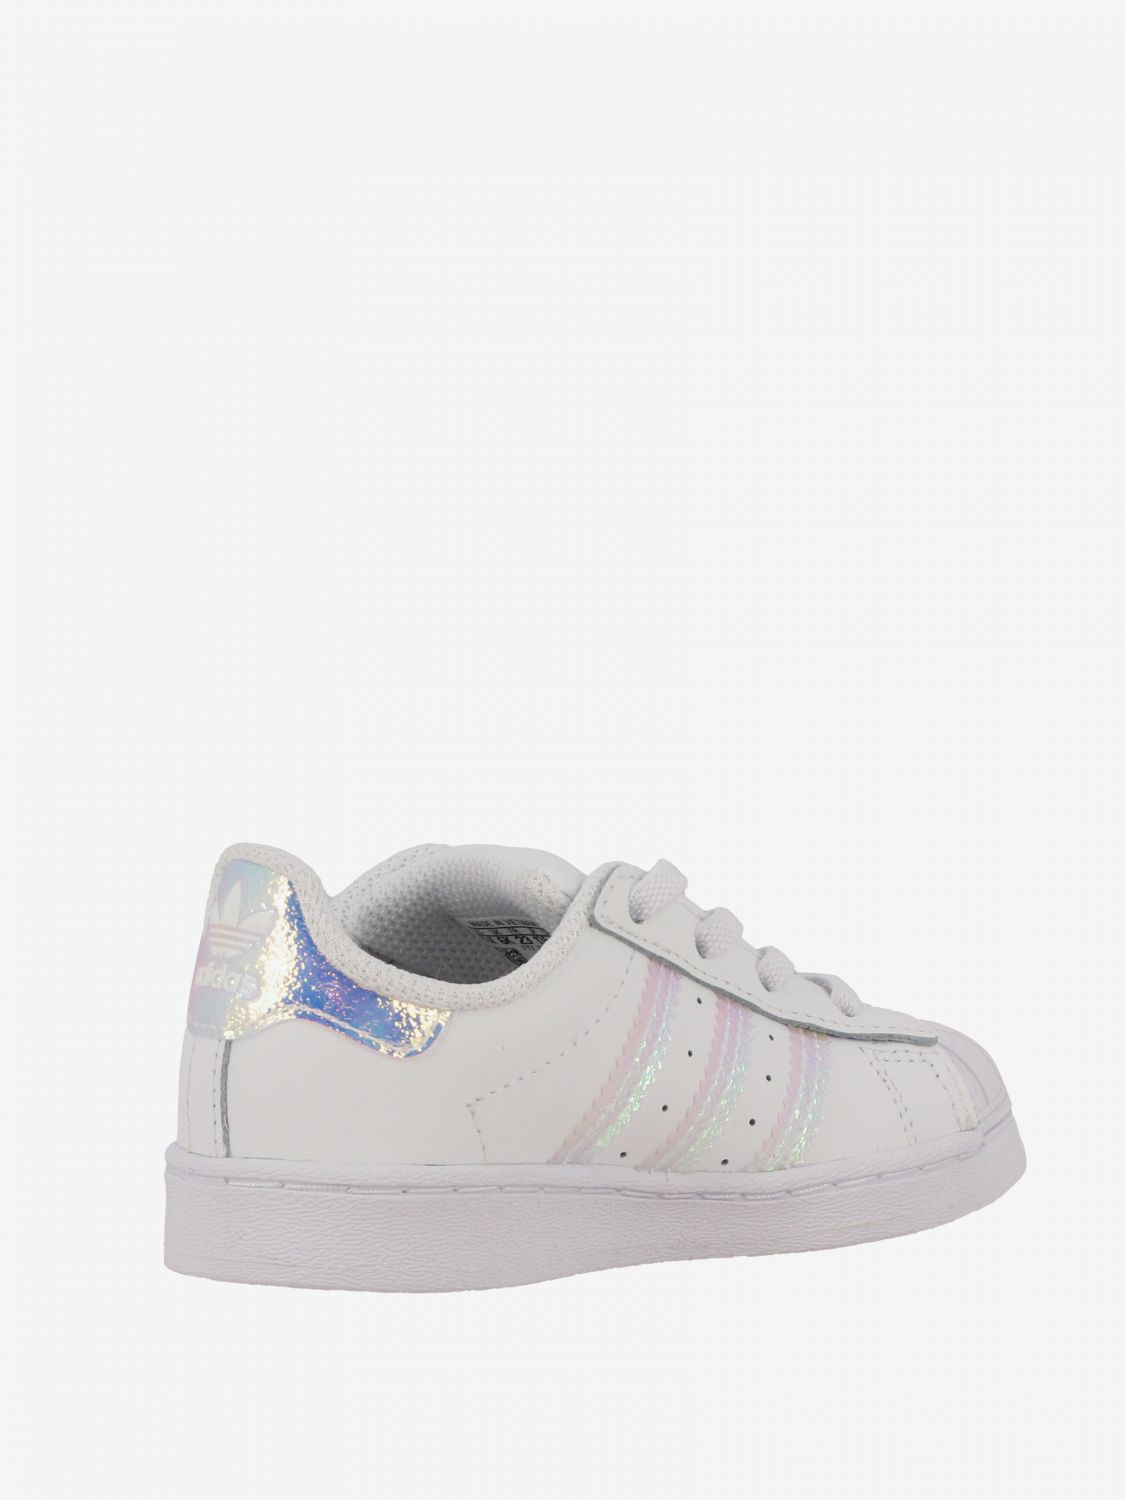 Shoes Adidas Originals: Superstar Adidas Originals sneakers in leather with logo white 4